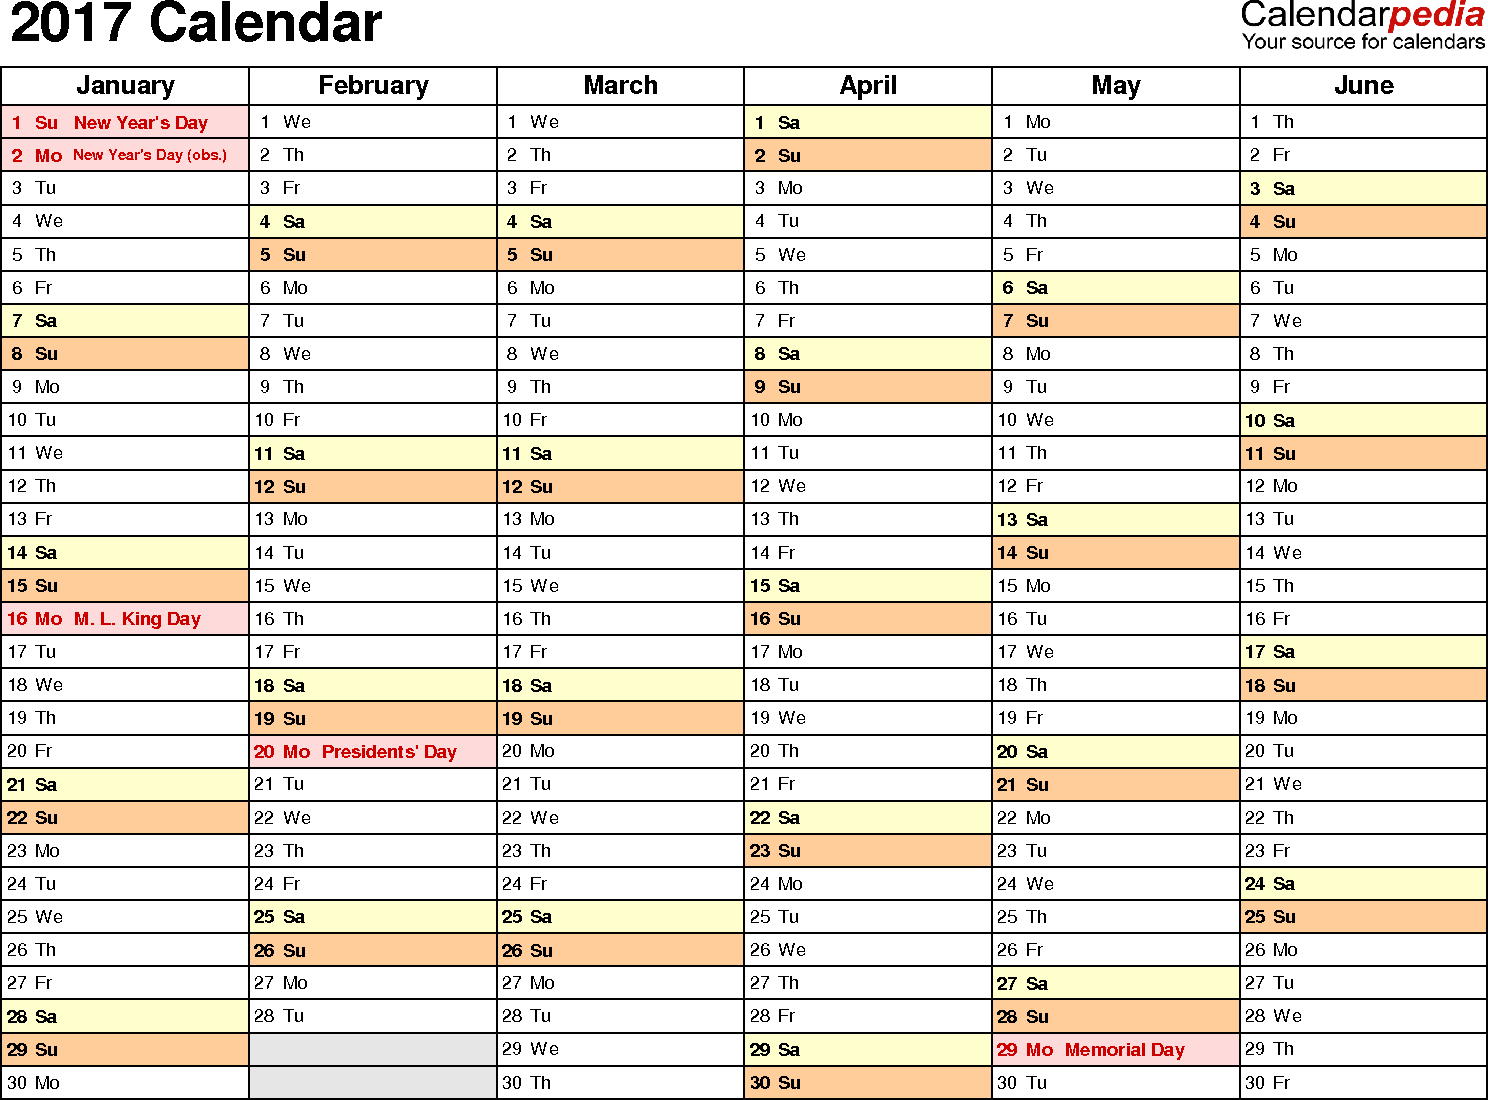 Ediblewildsus  Marvelous  Calendar  Download  Free Printable Excel Templates Xls With Engaging Template   Calendar For Excel Months Horizontally  Pages Landscape Orientation With Agreeable Loan Payment Excel Also Replace Text Excel In Addition Cdf Excel And Project Schedule Excel Template As Well As Get Excel Additionally Macros In Excel Tutorial From Calendarpediacom With Ediblewildsus  Engaging  Calendar  Download  Free Printable Excel Templates Xls With Agreeable Template   Calendar For Excel Months Horizontally  Pages Landscape Orientation And Marvelous Loan Payment Excel Also Replace Text Excel In Addition Cdf Excel From Calendarpediacom